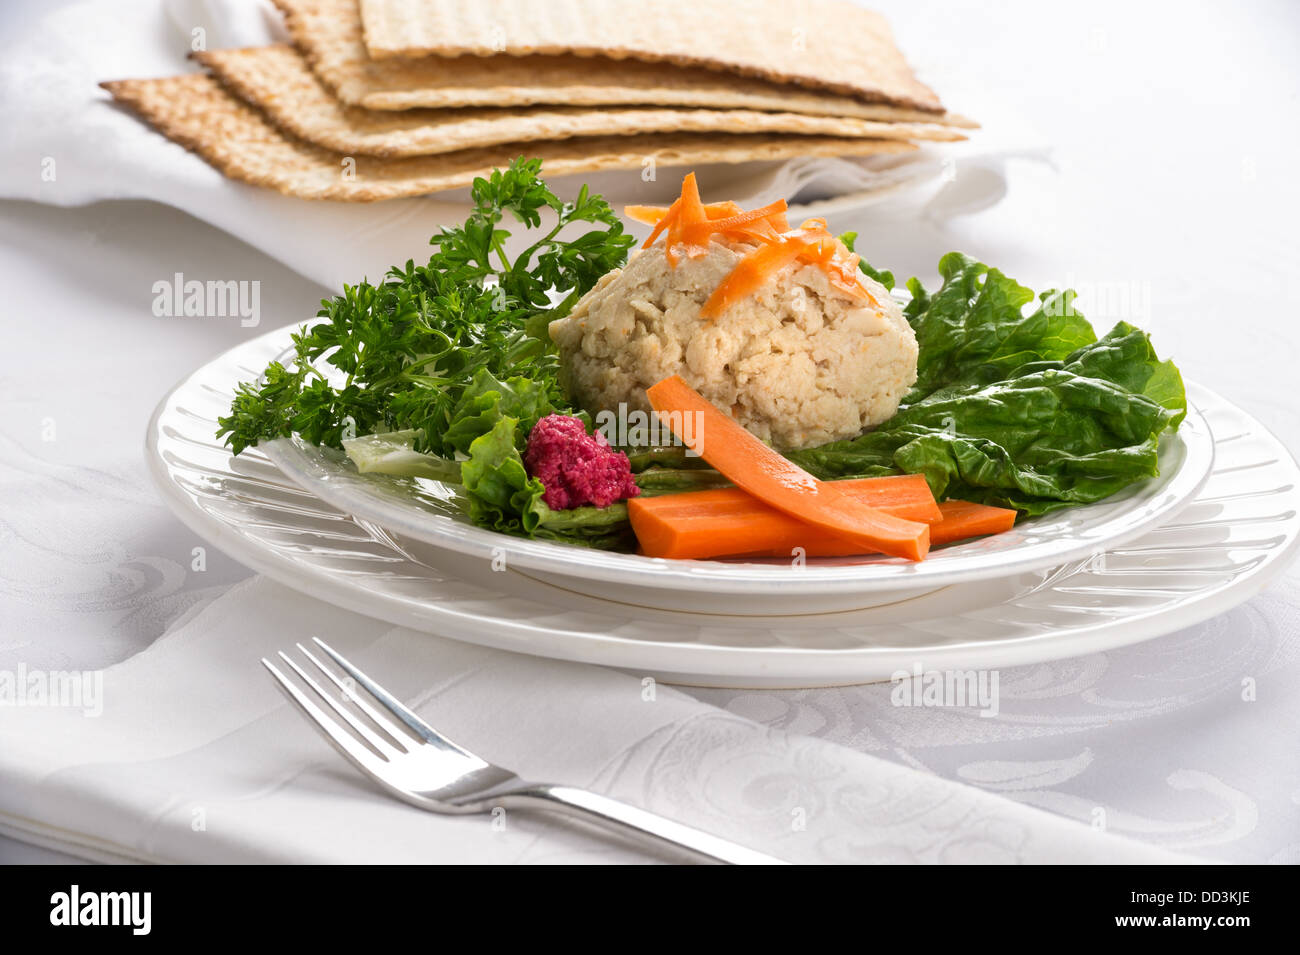 Traditional Jewish passover food gefilte fish with carrots